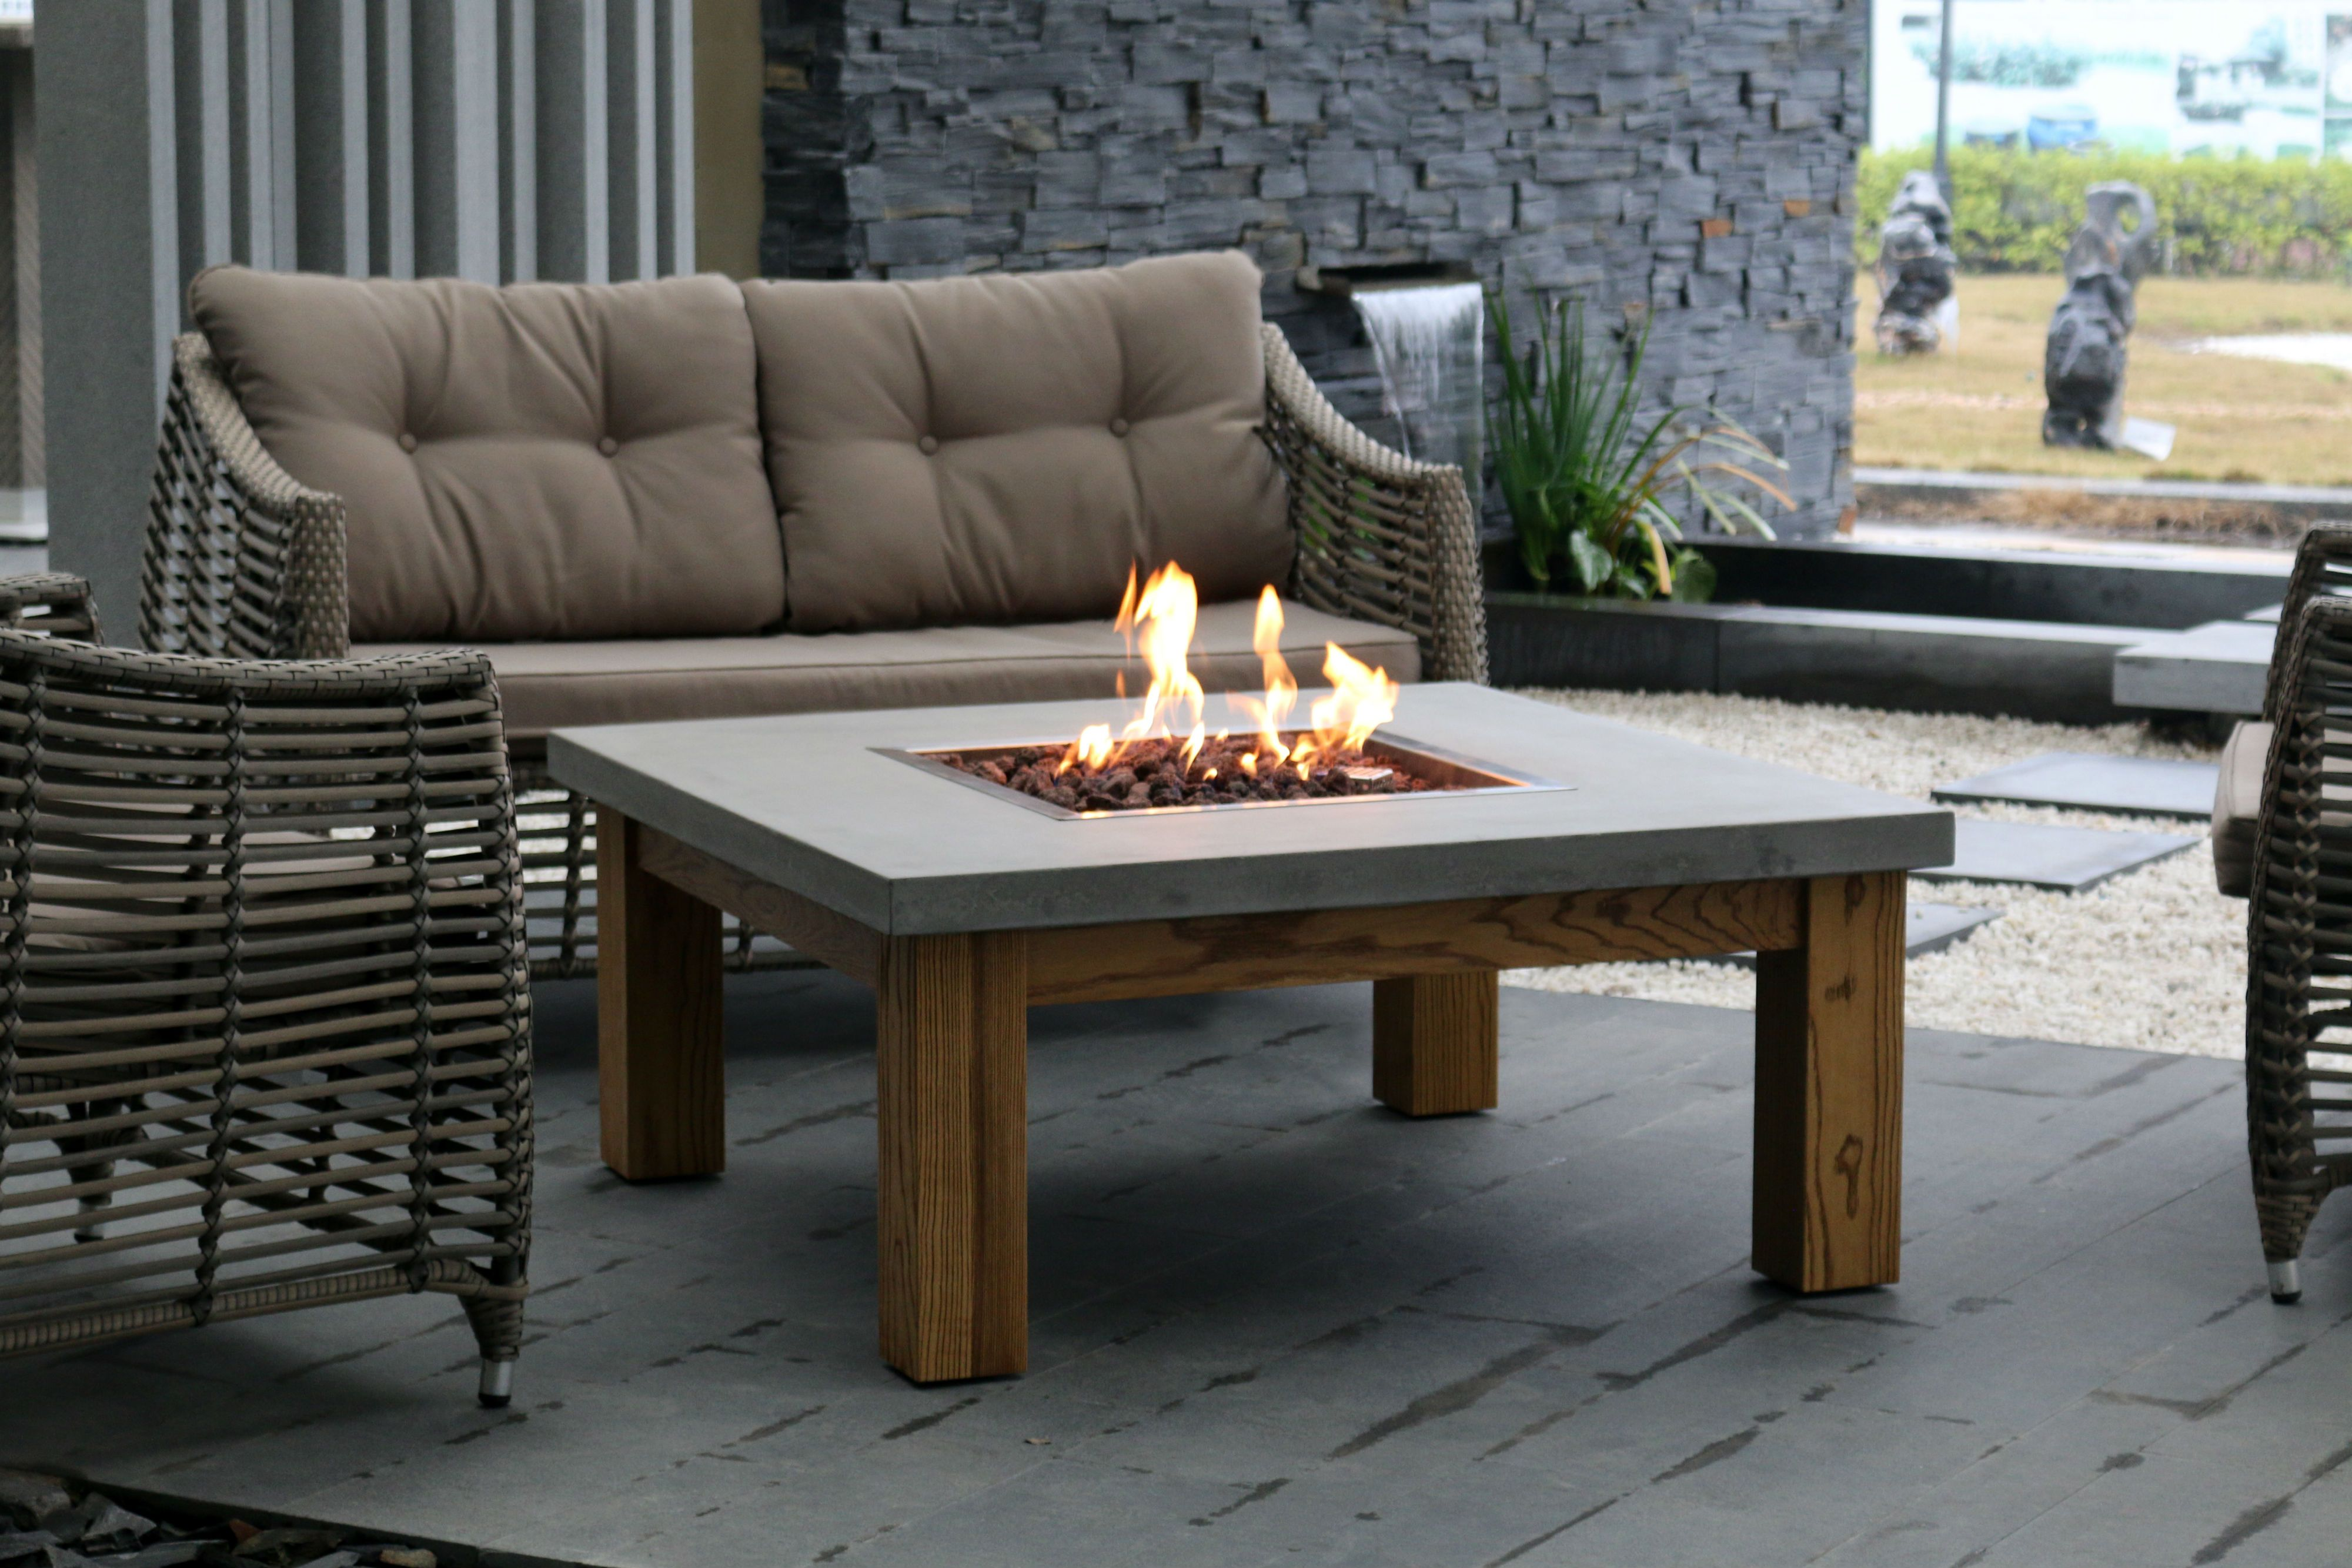 The Elementi Amish Table Fire Pit Combines A Cast Concrete Top And